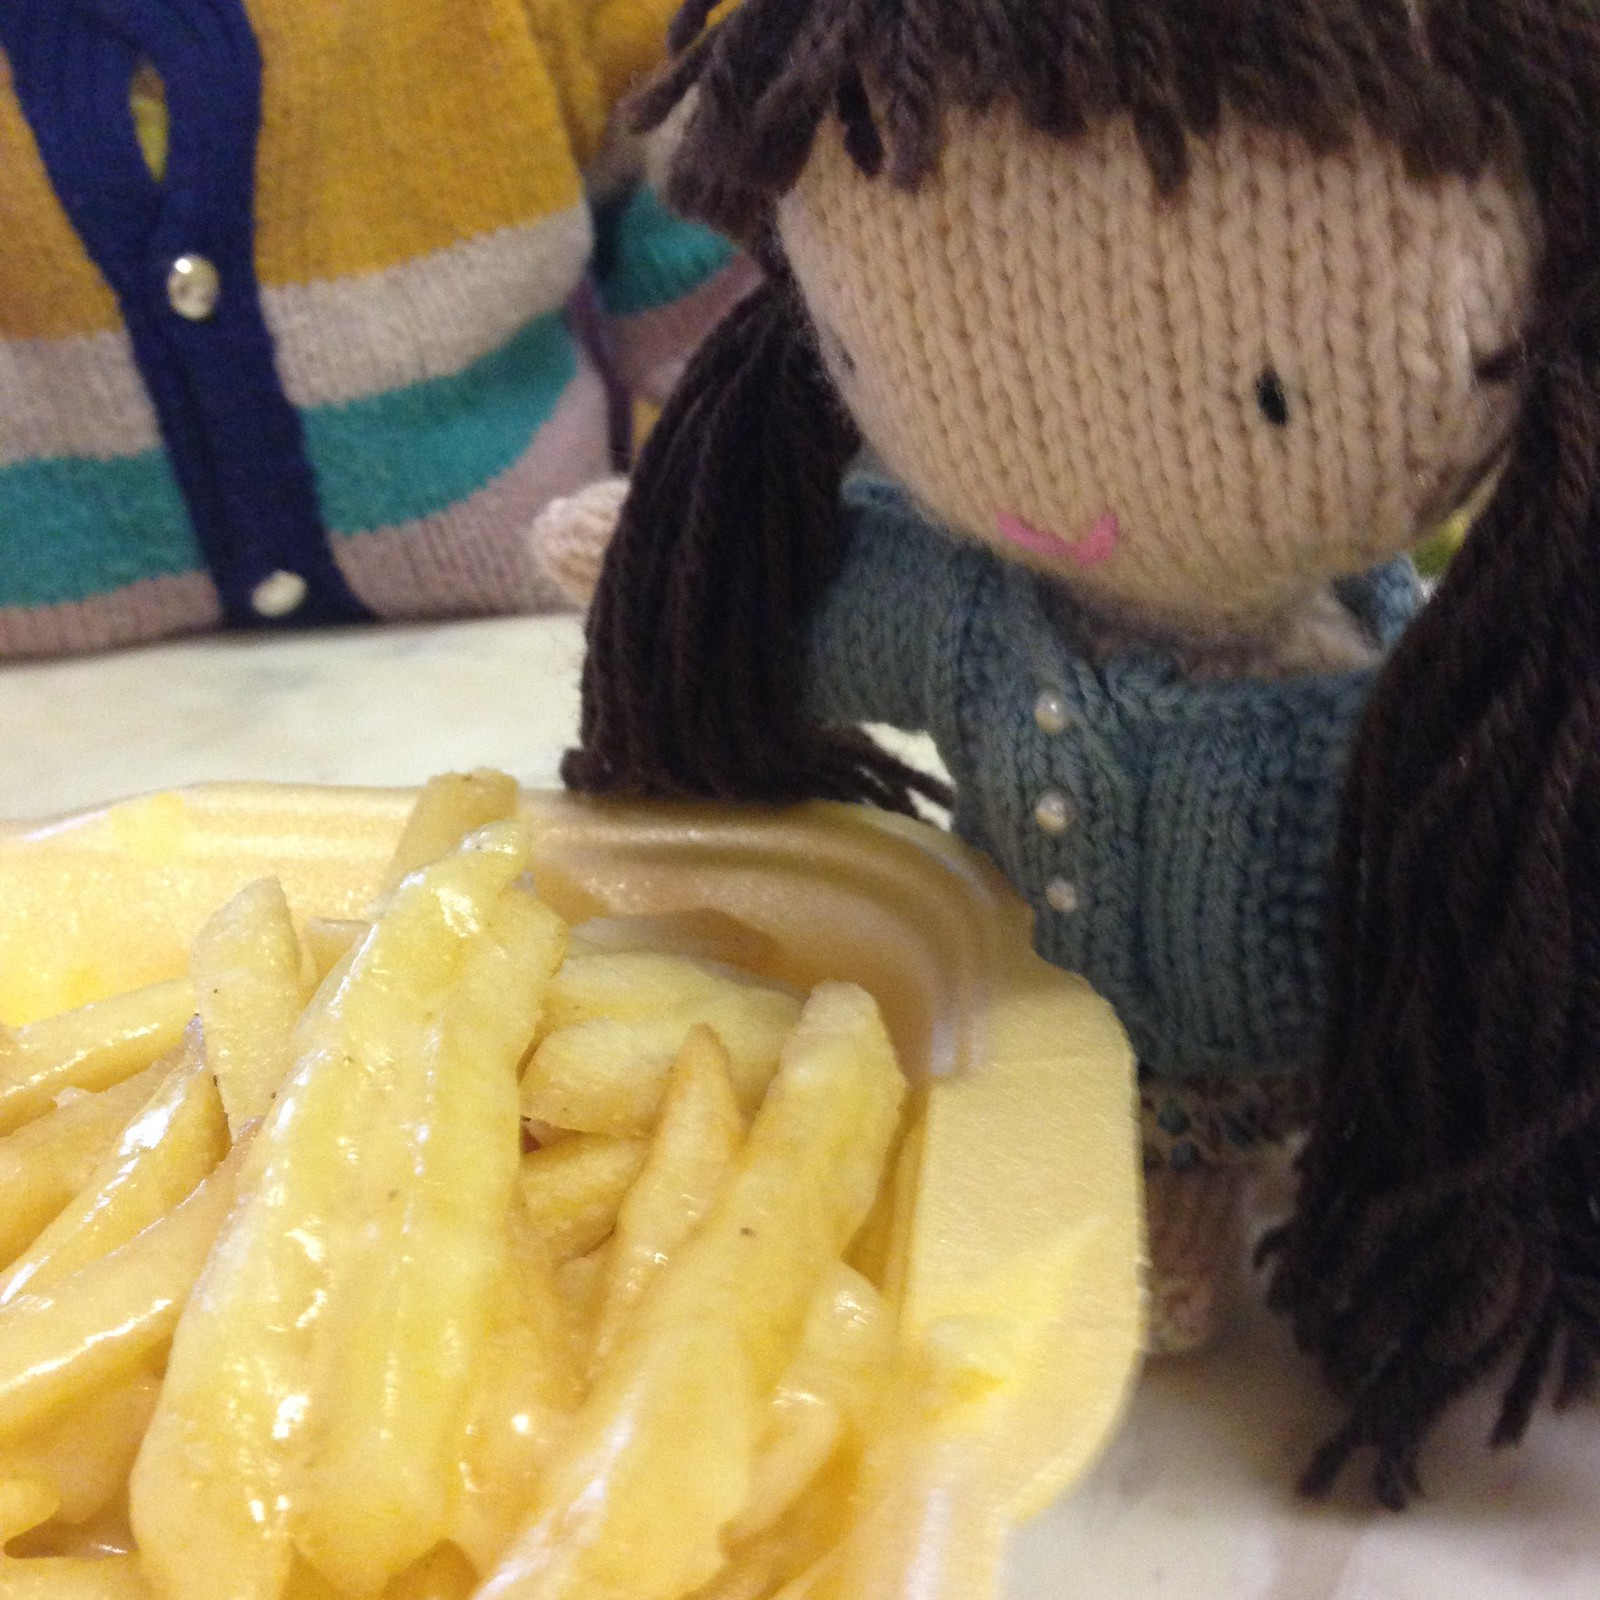 woolapple eating cheesy chips